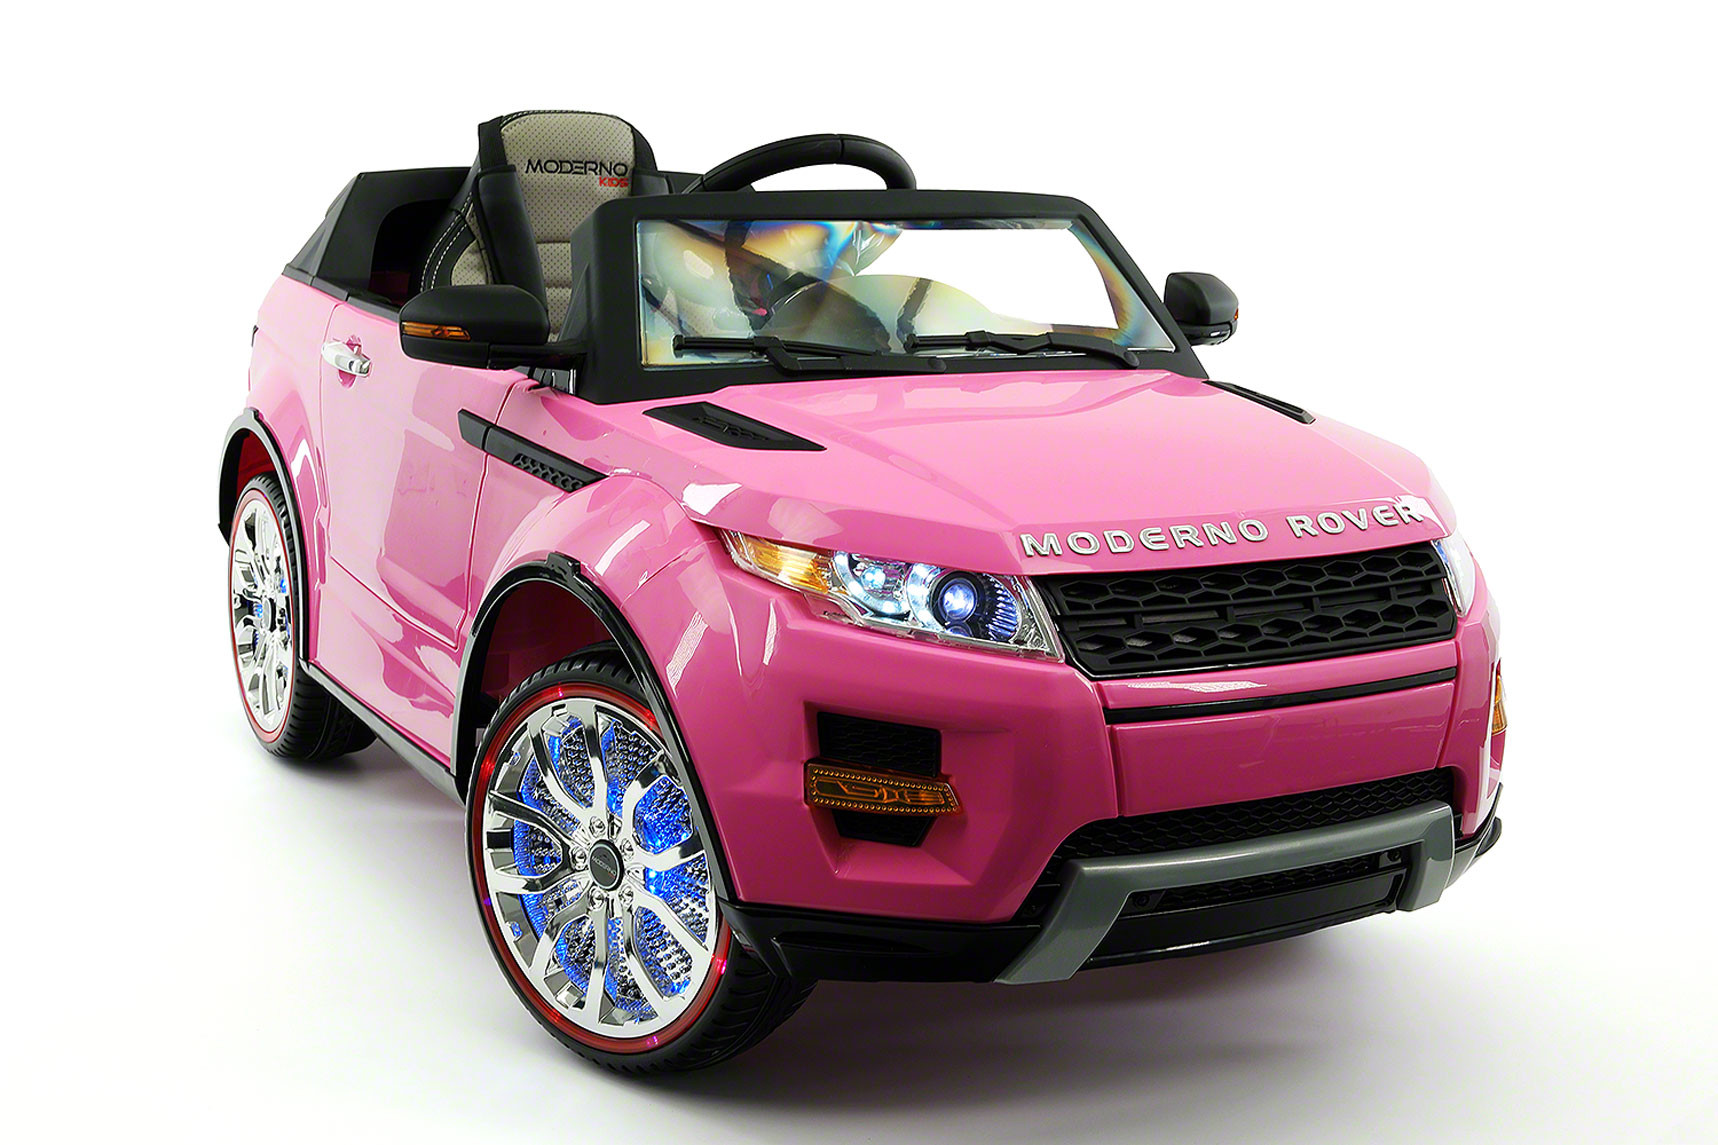 Moderno Rover 12V Kids Ride-On Car with R C Parental Remote   Pink by Moderno Kids